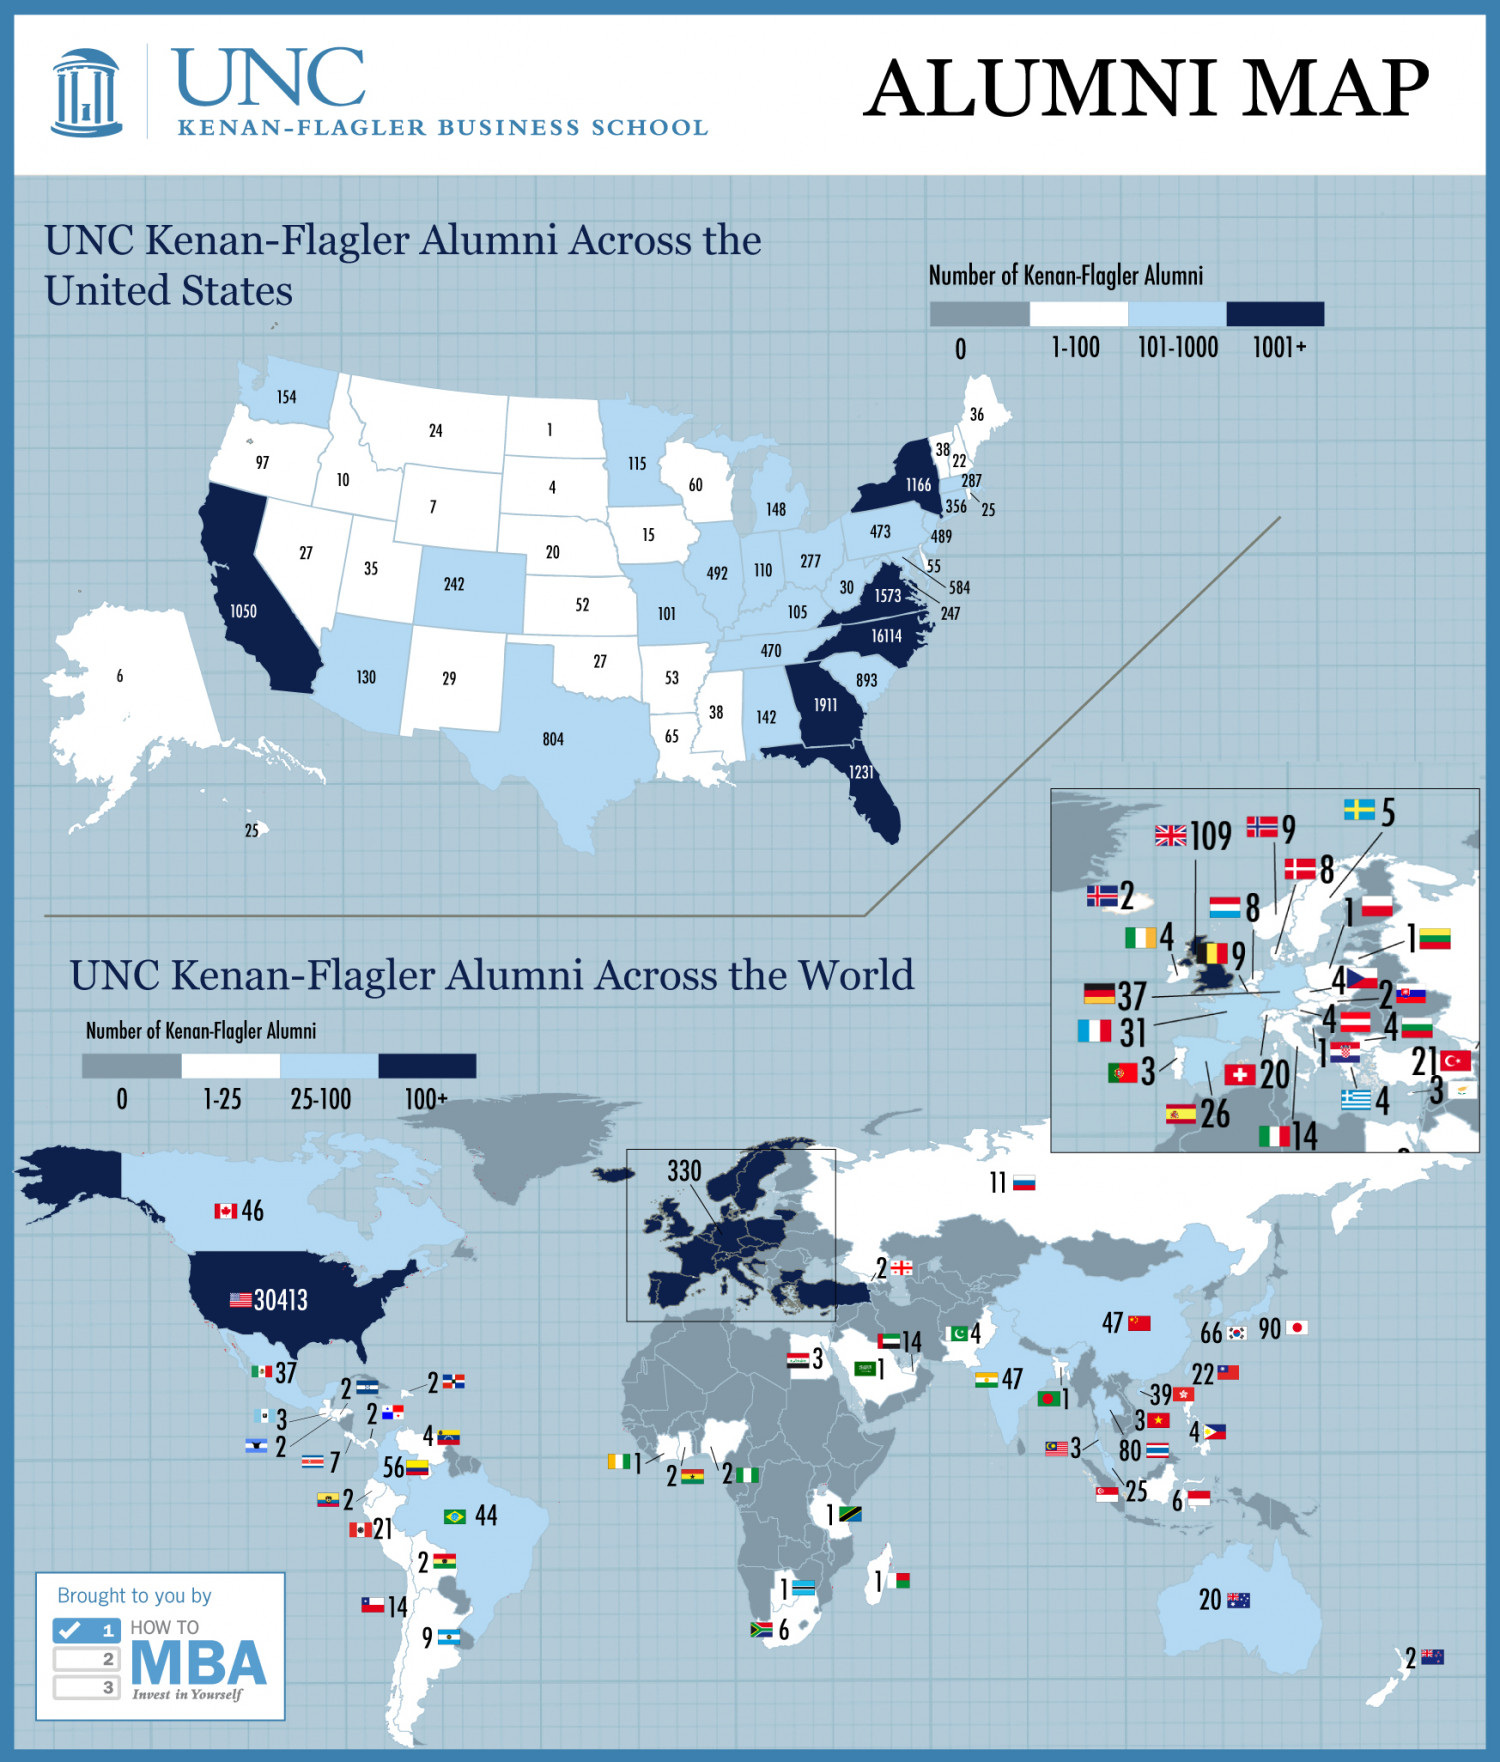 MBA@UNC Alumni Map Infographic